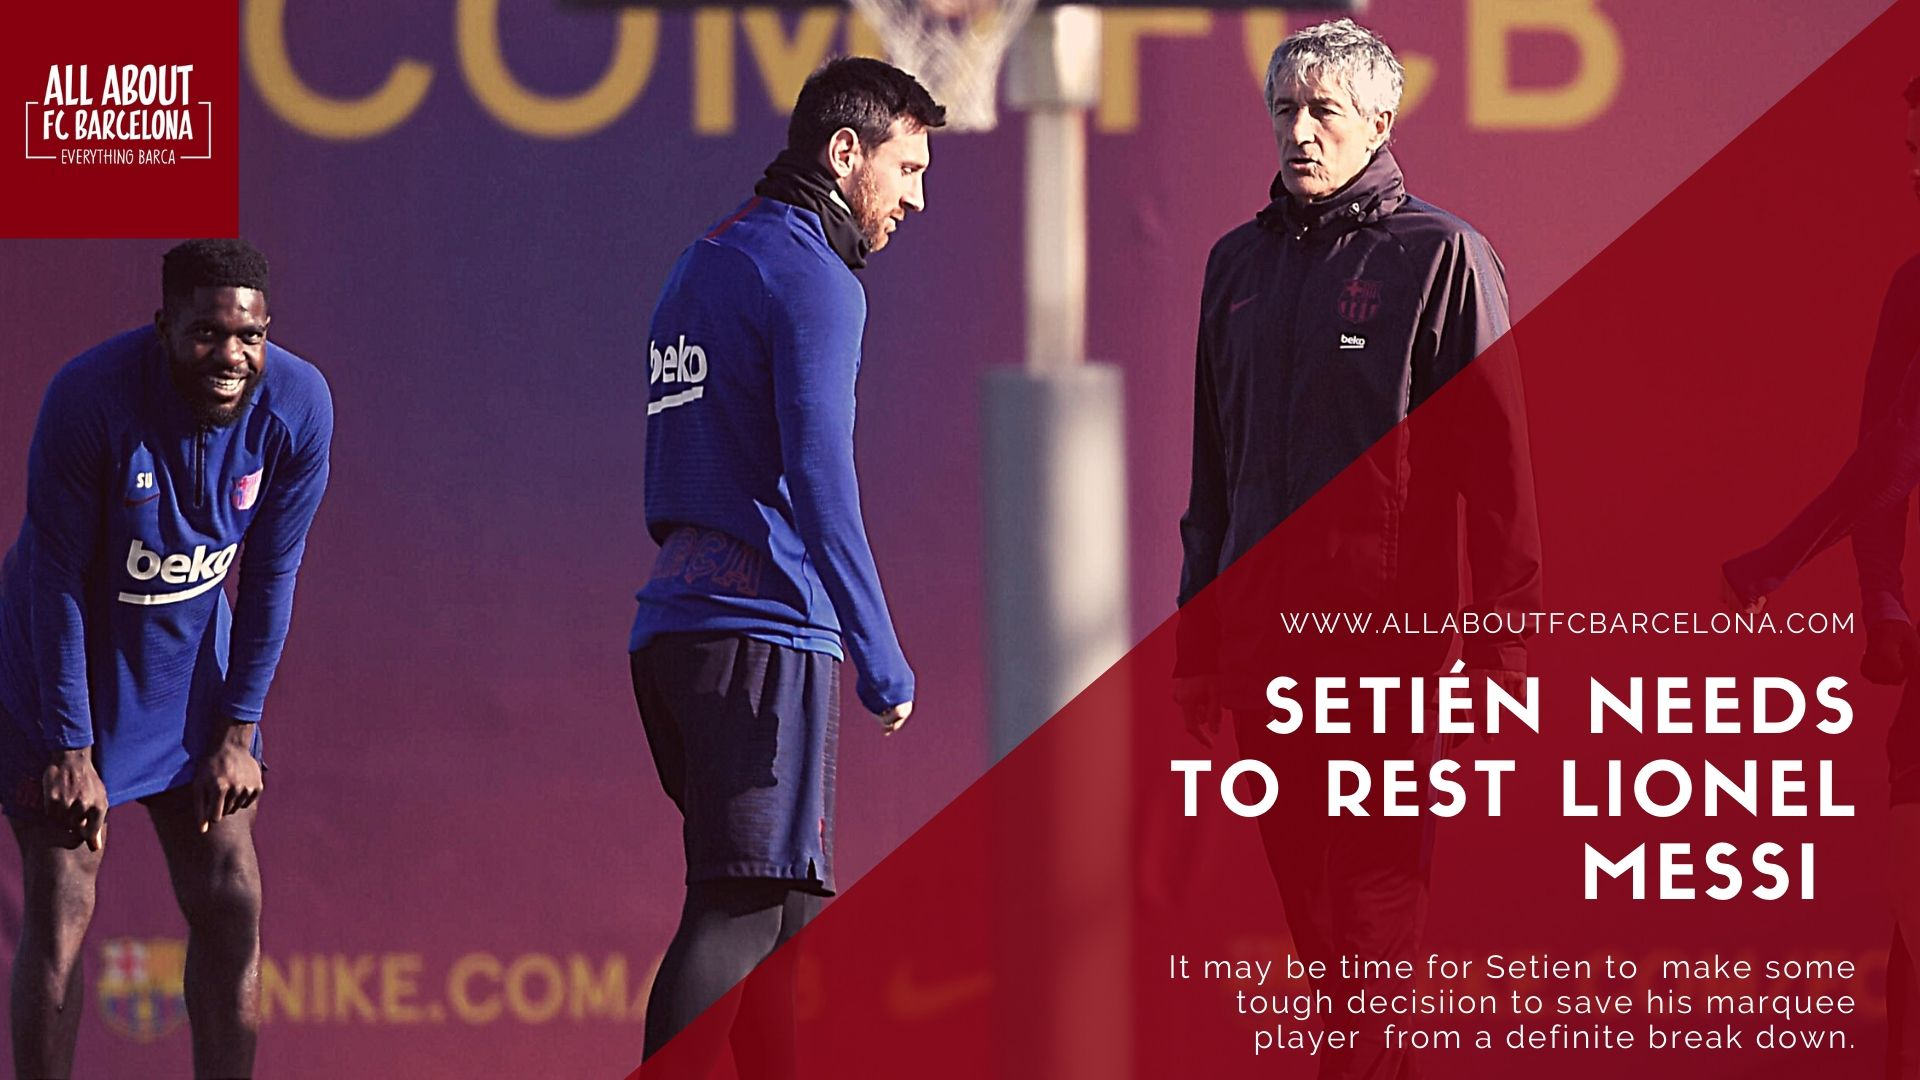 Setien and Messi